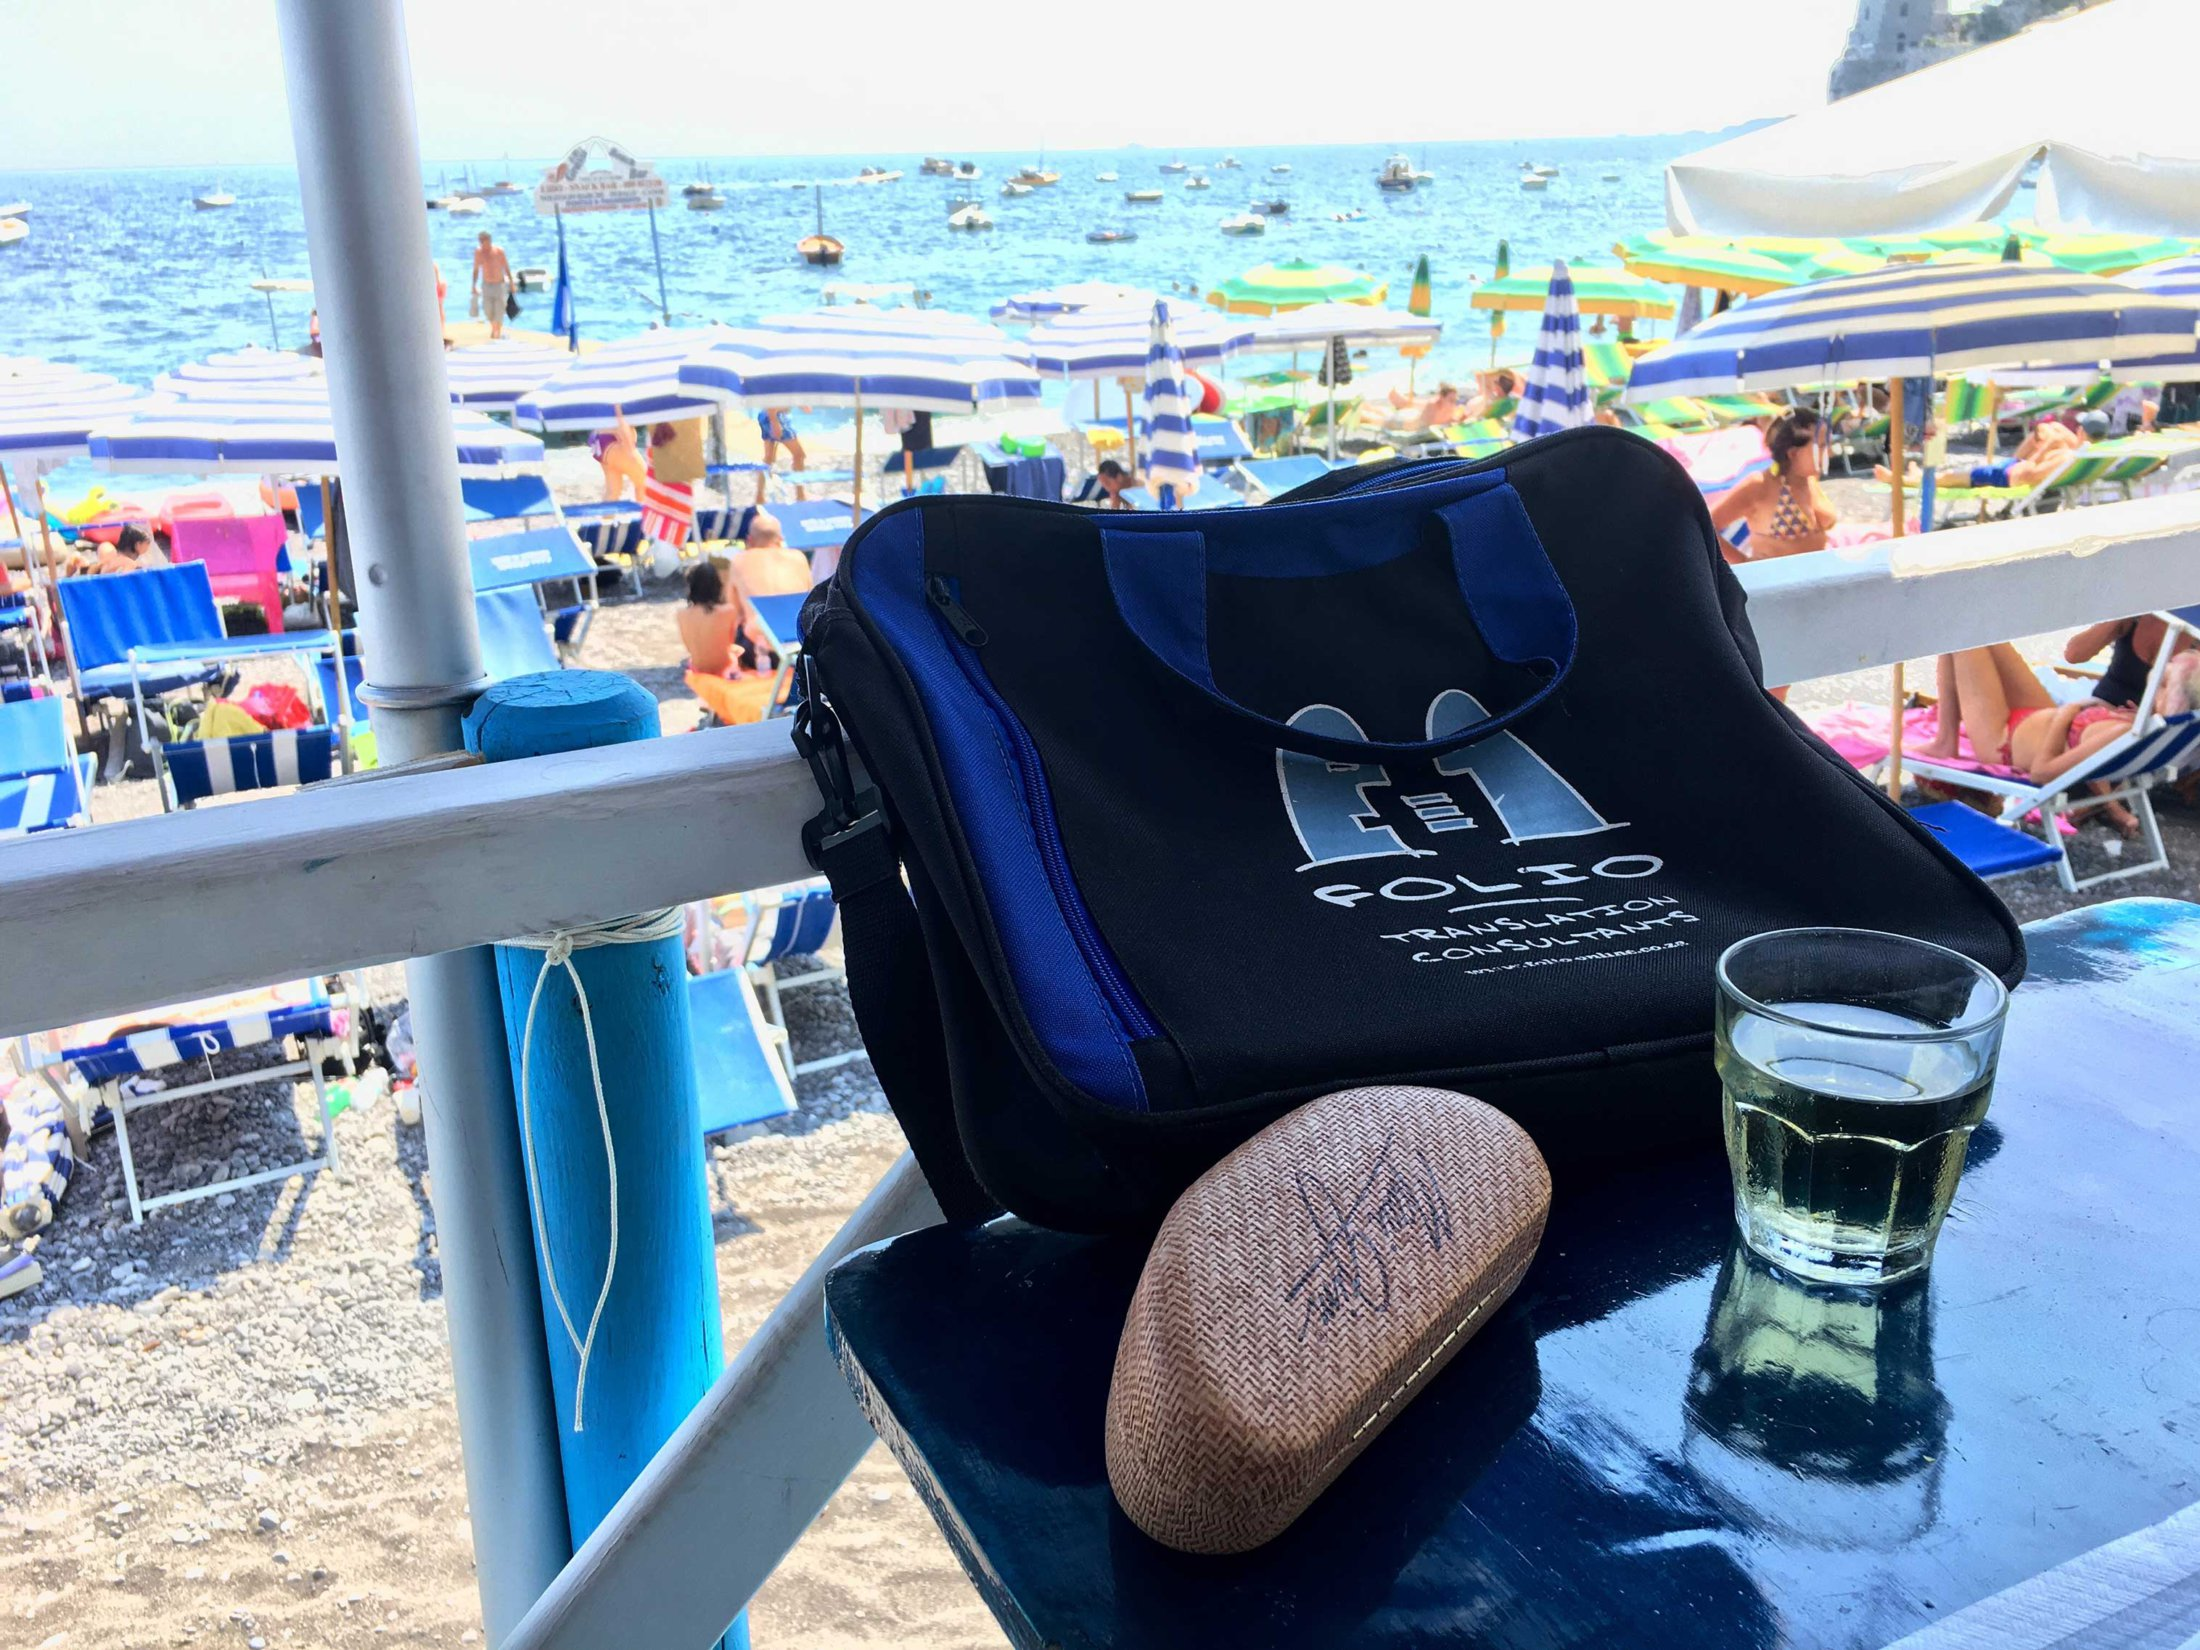 La dolce vita. Bag having a drink at the beach in Positano, Italy. July 2017.